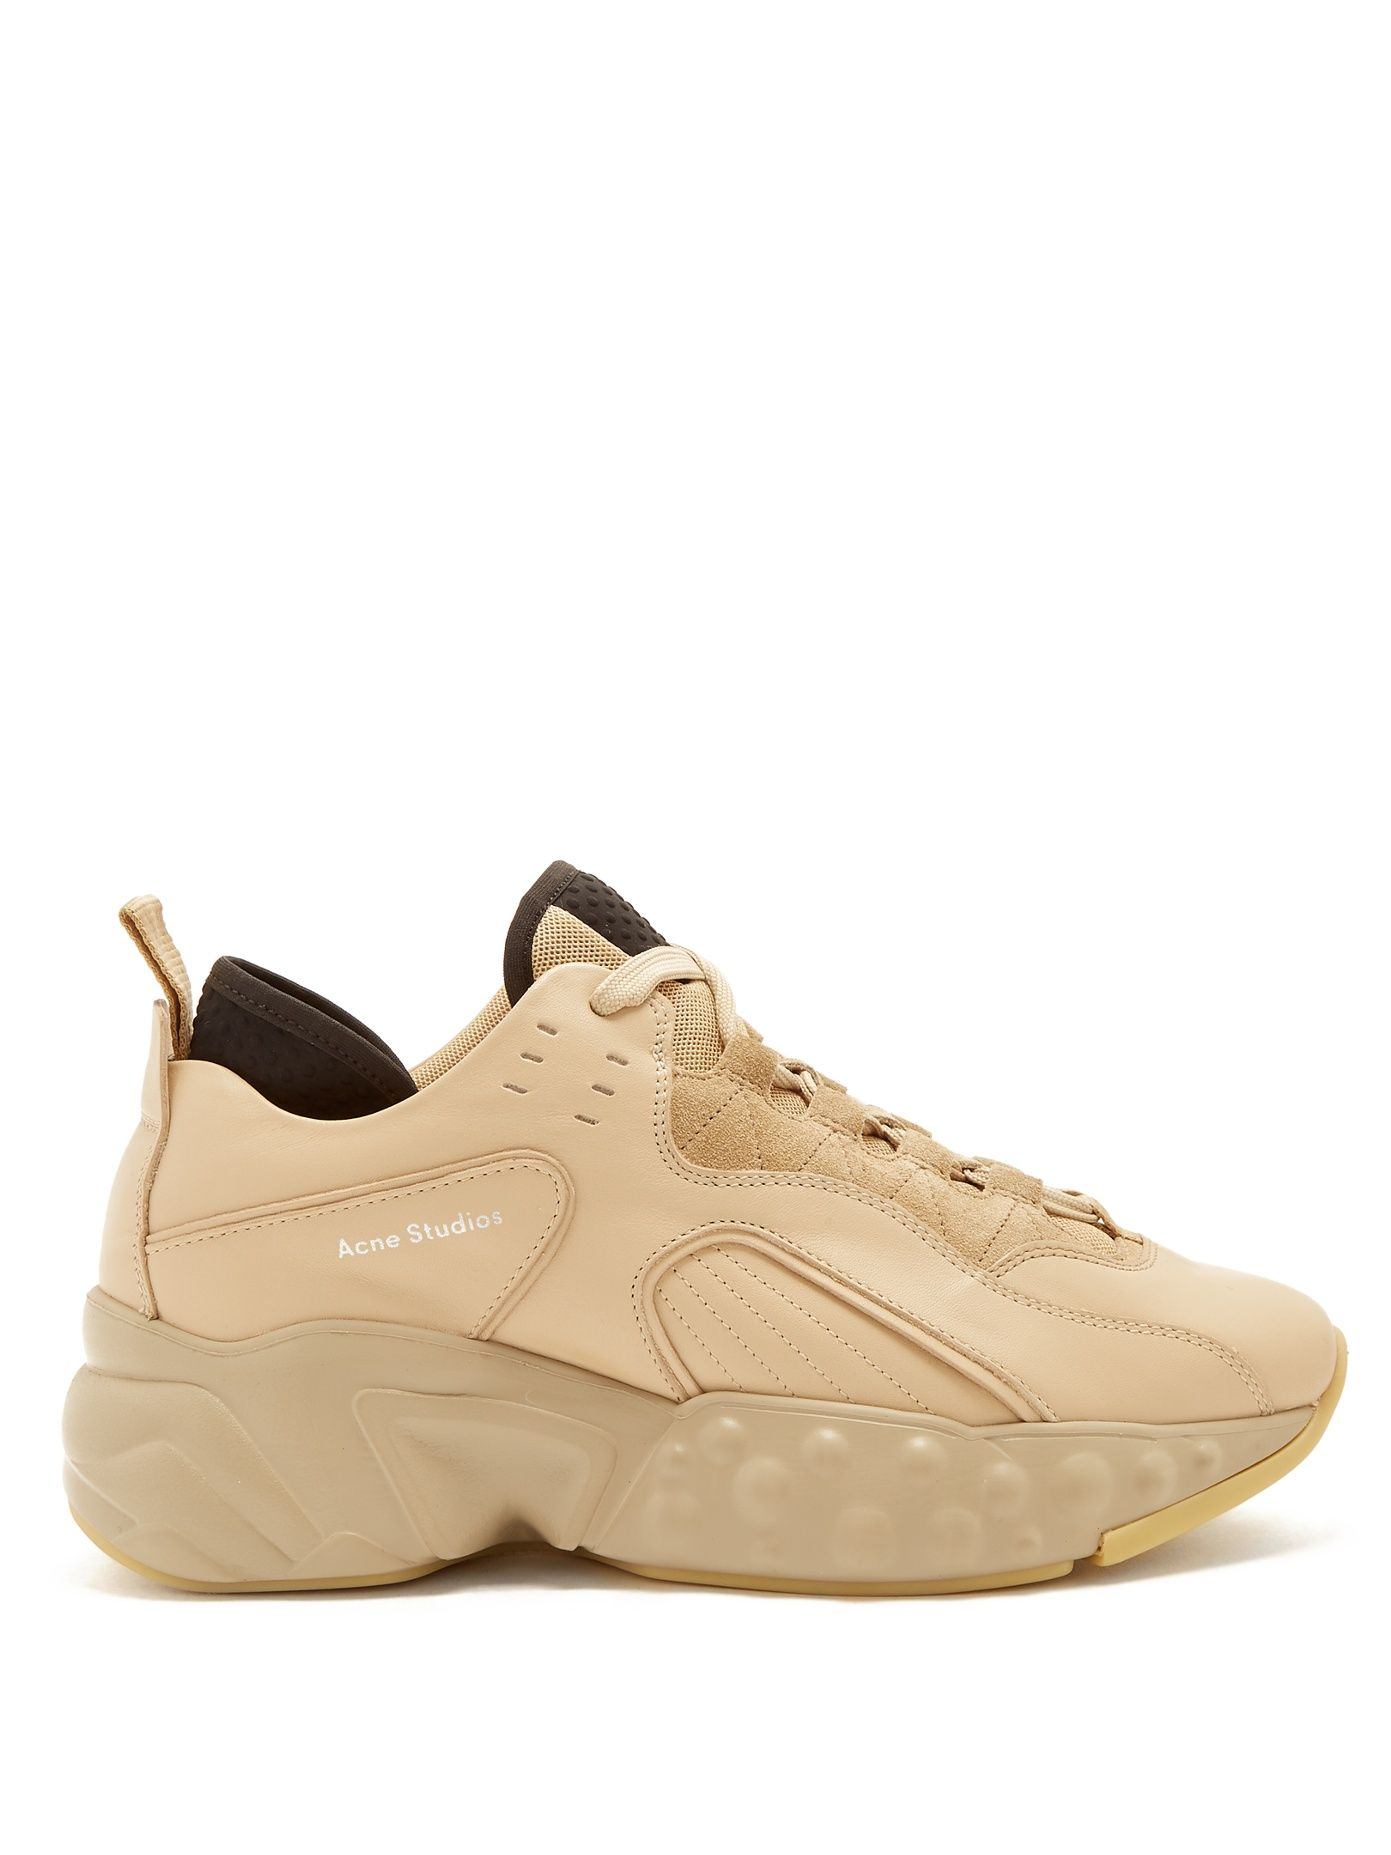 Pre-owned - Leather low trainers Acne Studios AQspZ3W